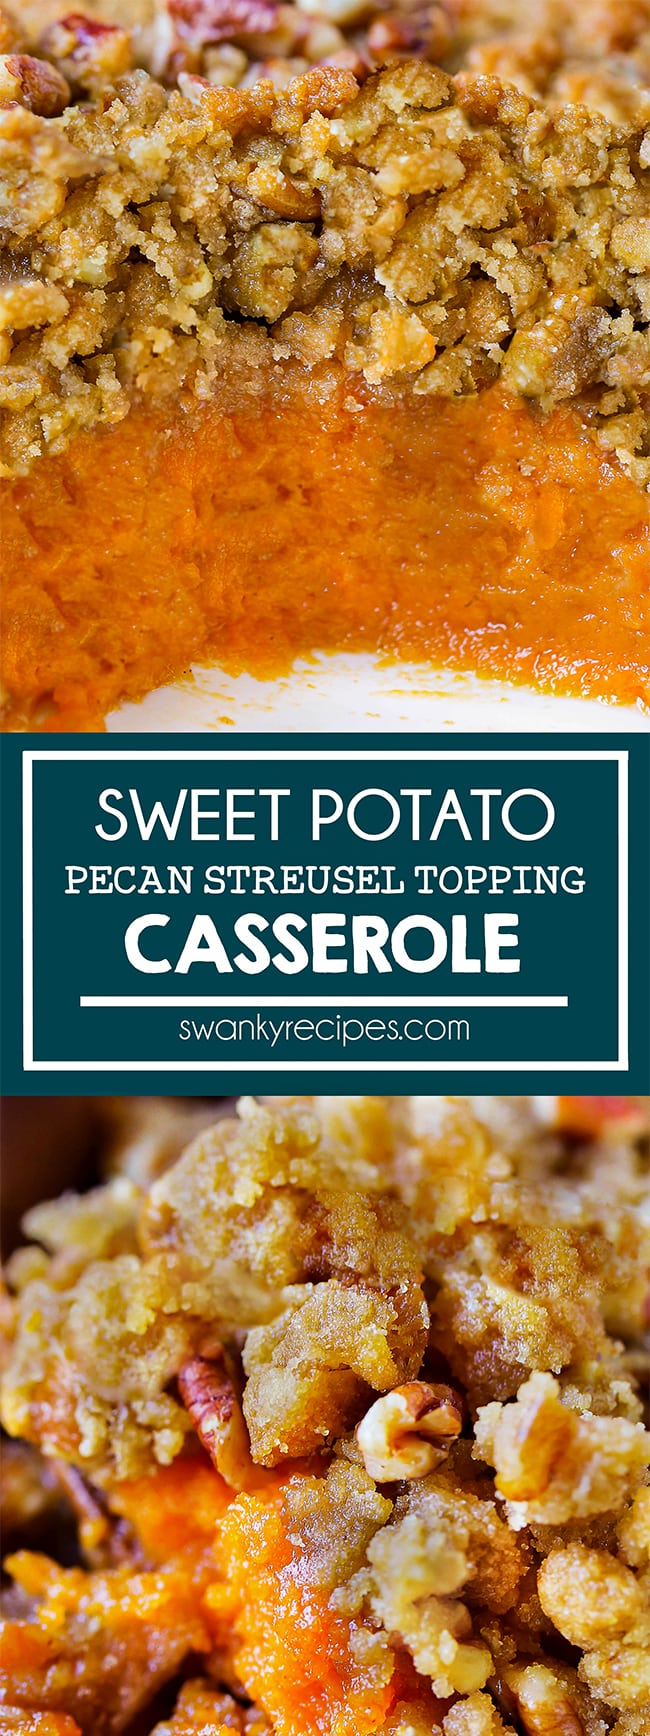 Sweet Potato Casserole with Pecan Streusel - The BEST sweet potato casserole with a classic sweet filling and crunchy streusel topping. Make this classic Thanksgiving side dish for the holiday.